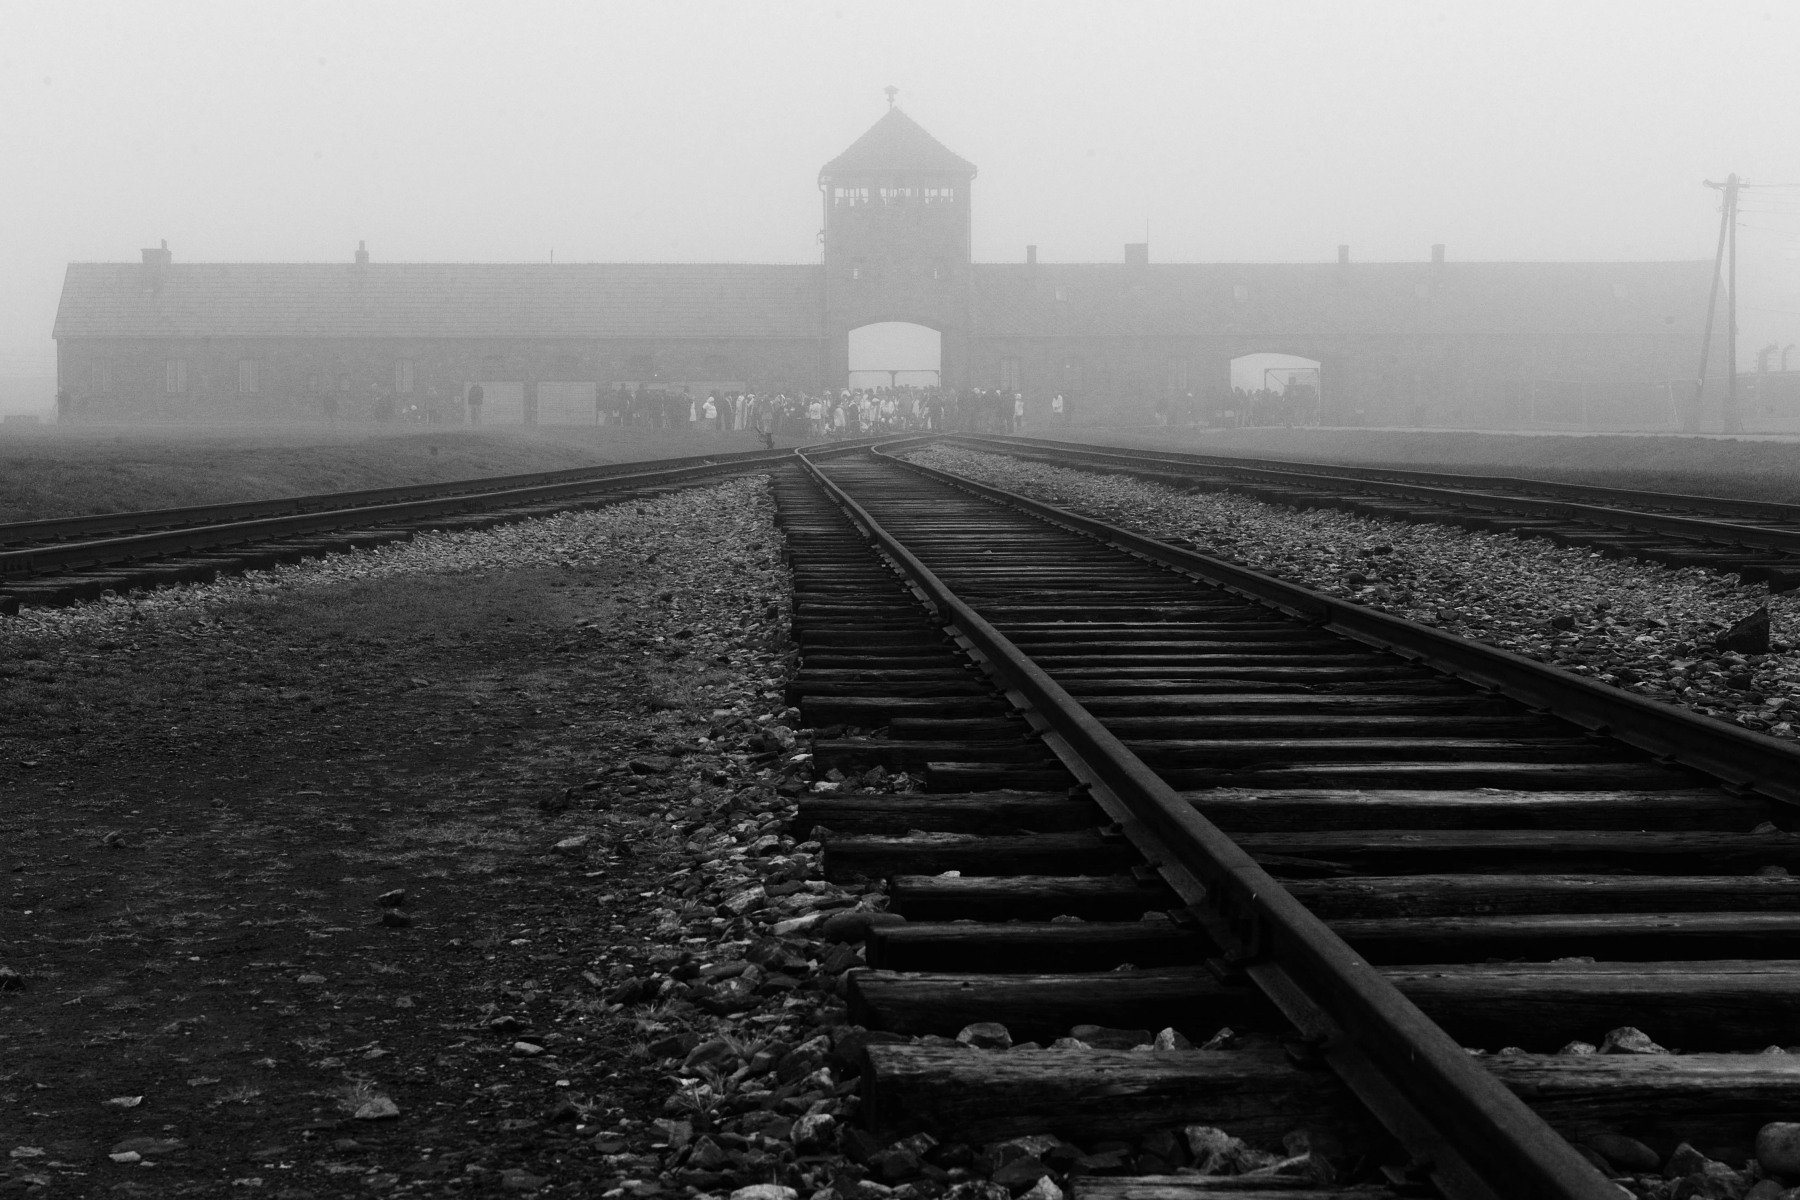 All over the world, Auschwitz has become a symbol of terror, genocide and the Holocaust.